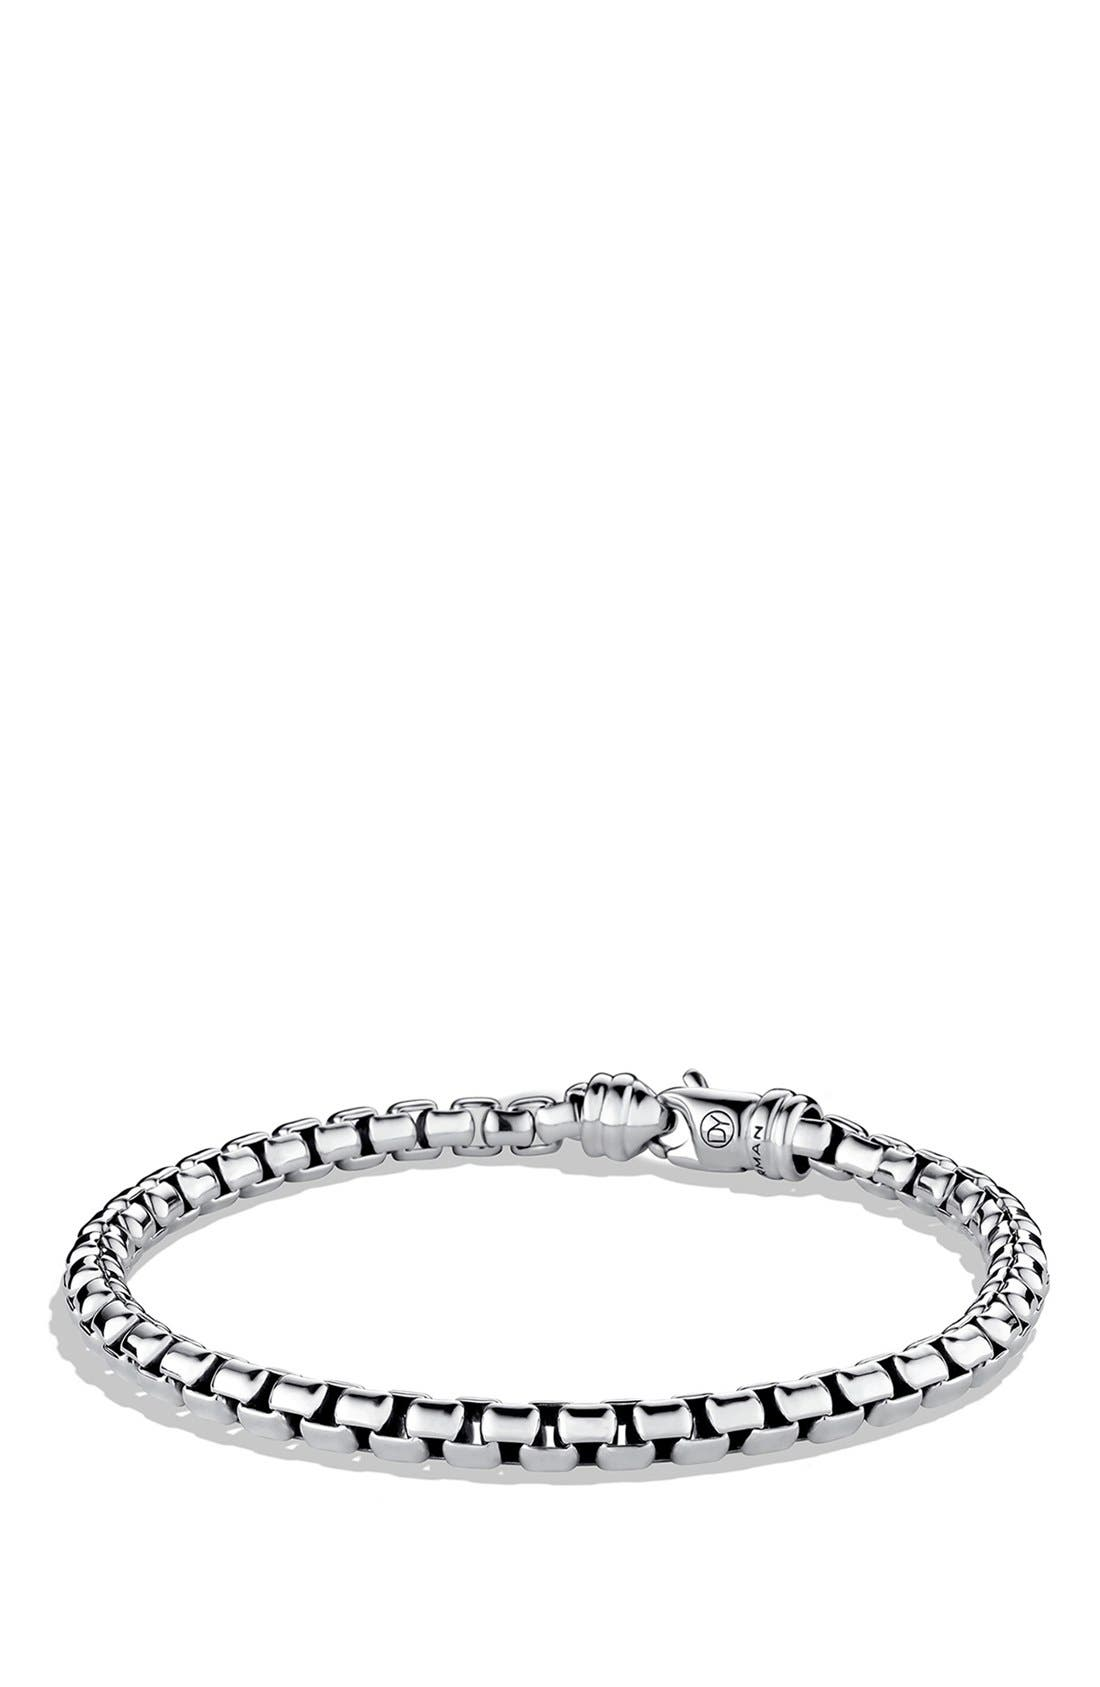 Alternate Image 1 Selected - David Yurman 'Chain' Large Link Box Chain Bracelet